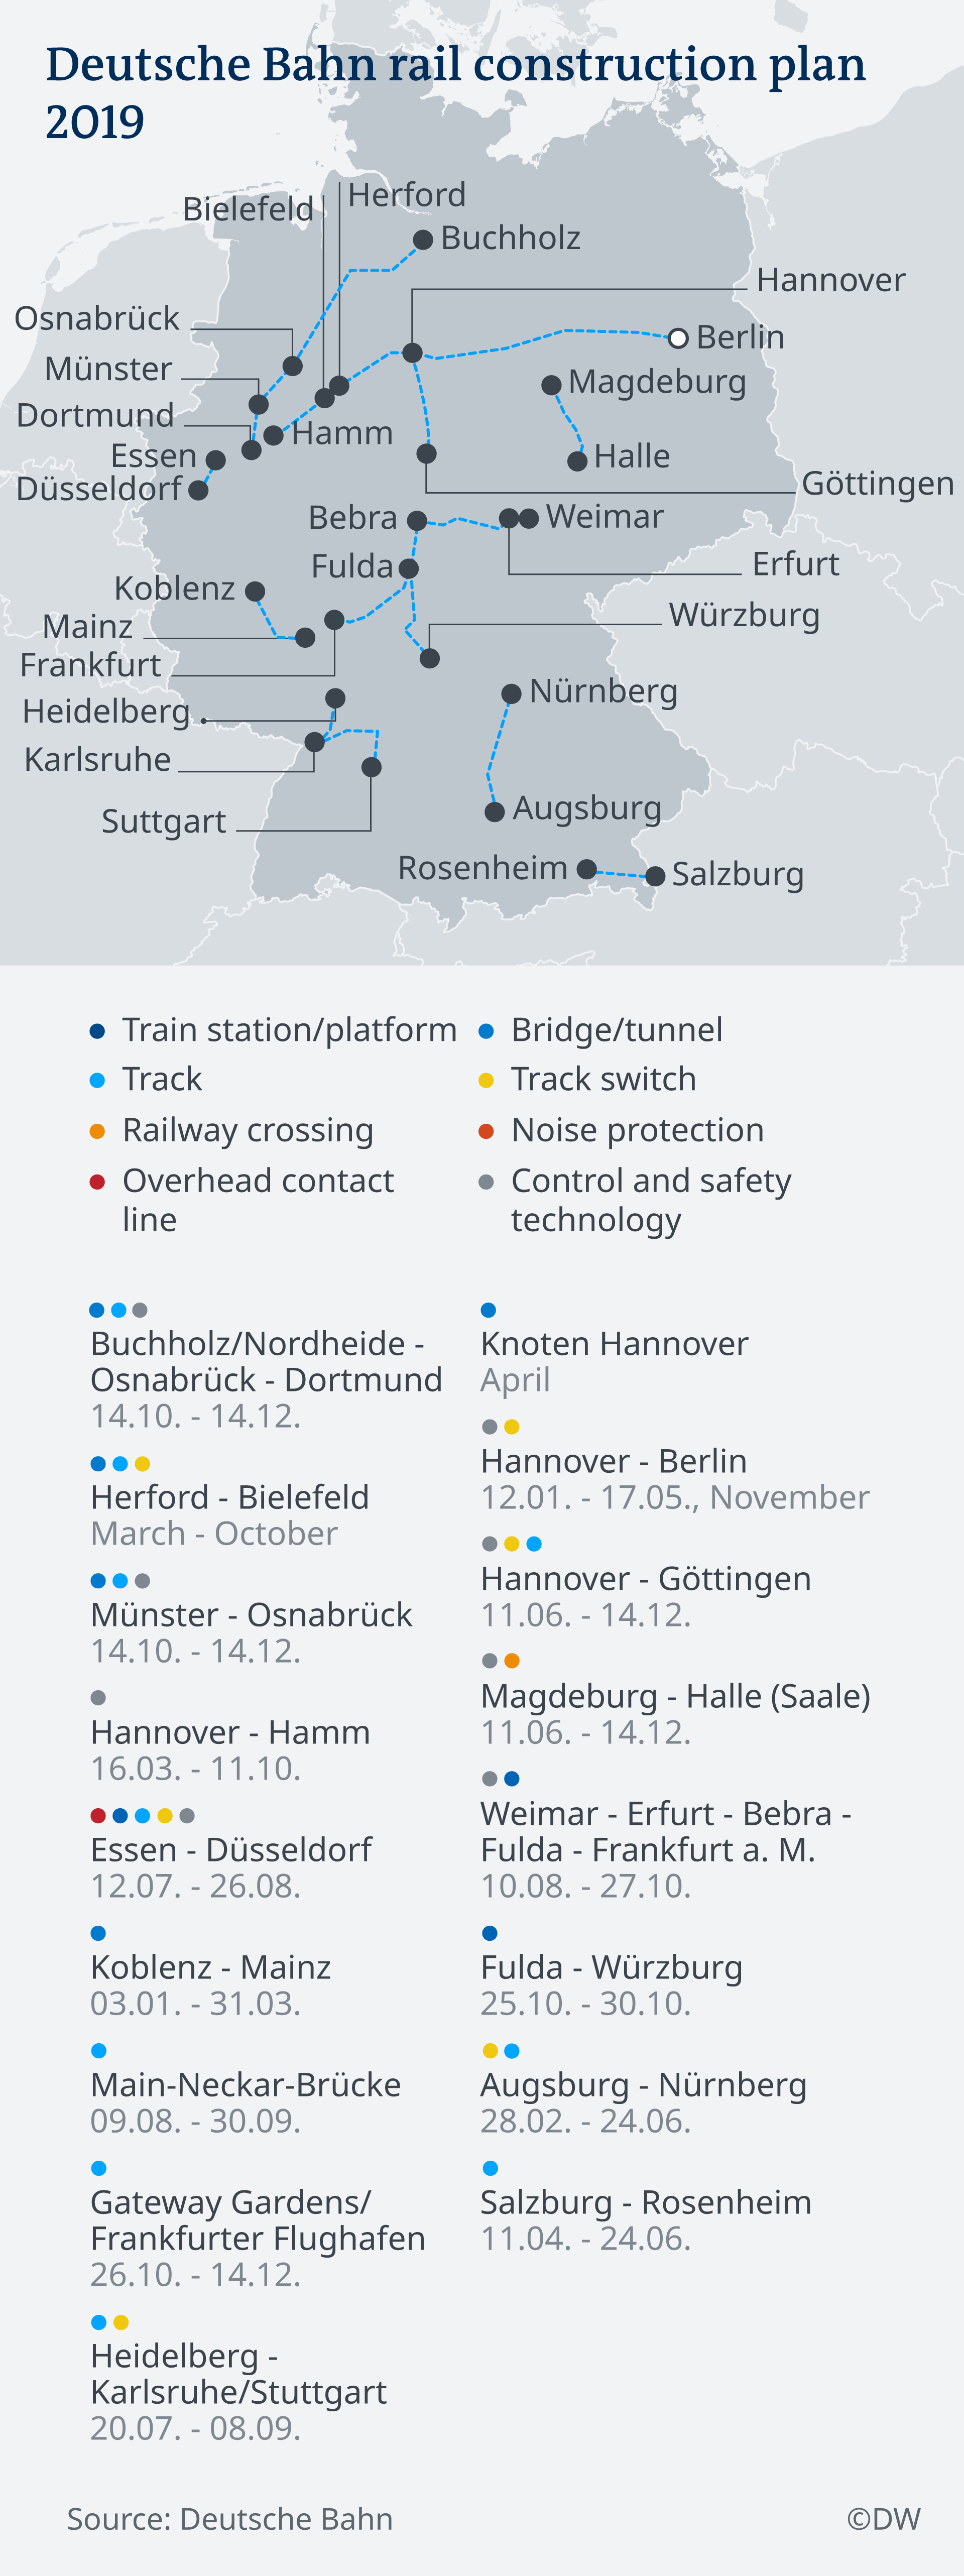 Map of Germany showing Deutsche Bahn's rail construction plans